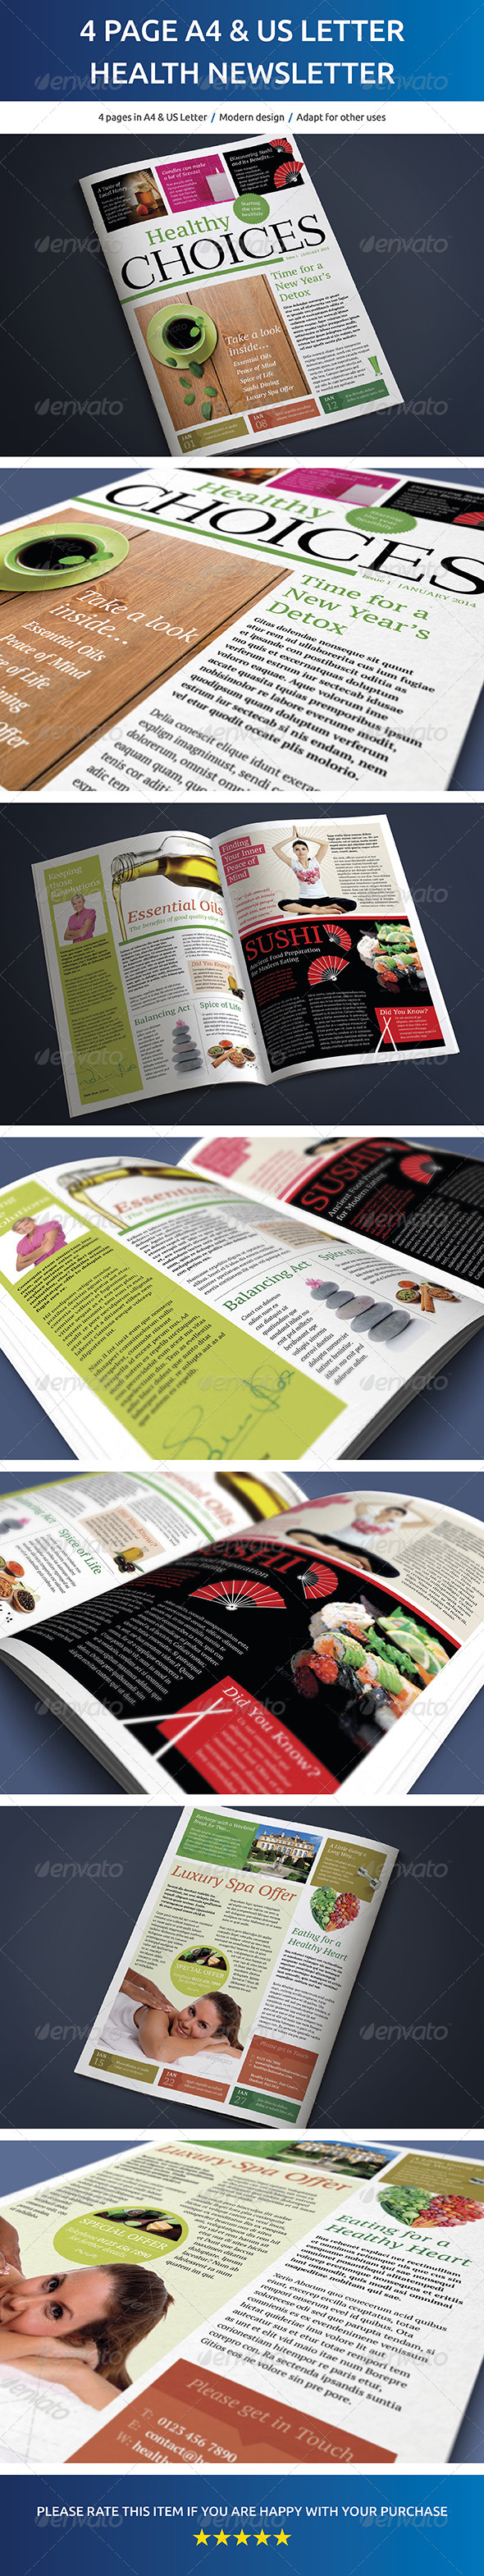 4 Page A4 and US Letter Healthy Living Newsletter - Newsletters Print Templates